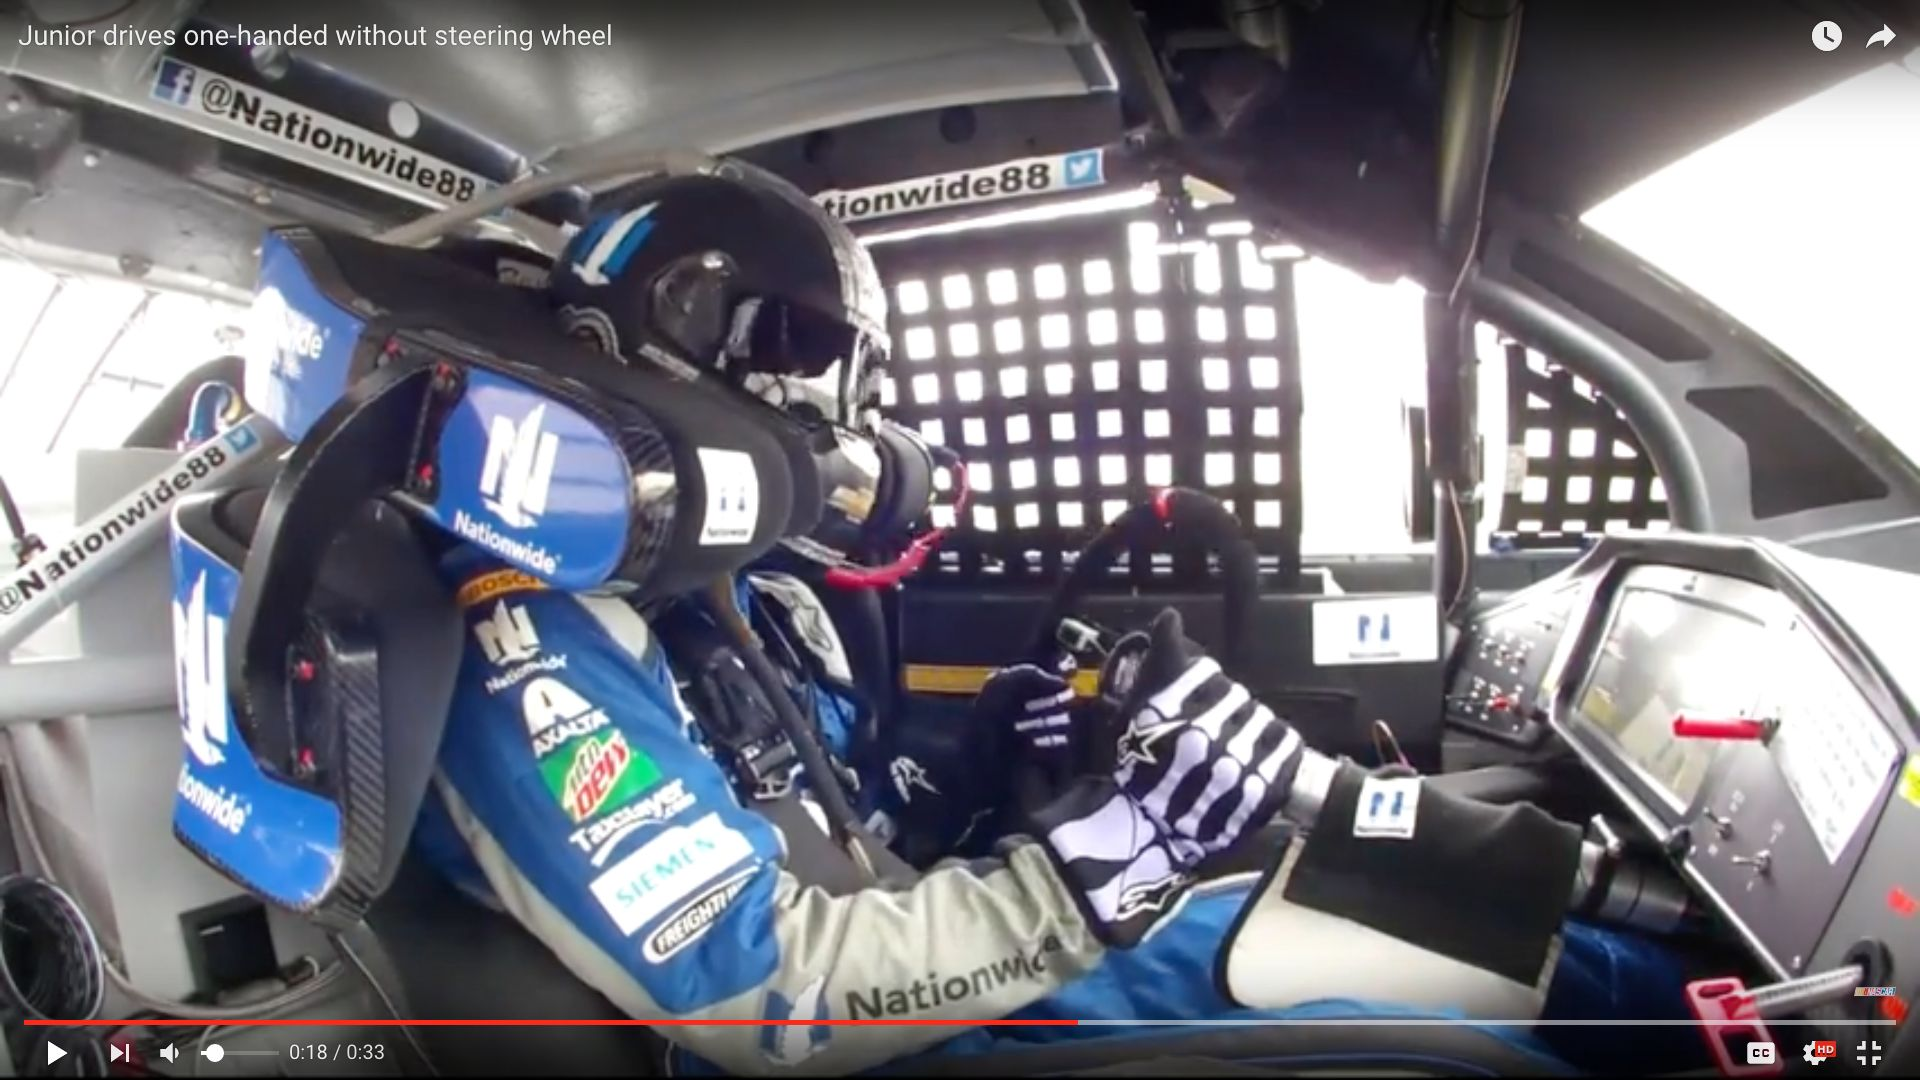 NASCAR driver Dale Earnhardt Jr. is seen steering with his steering column after the wheel popped of mid-race Sunday.